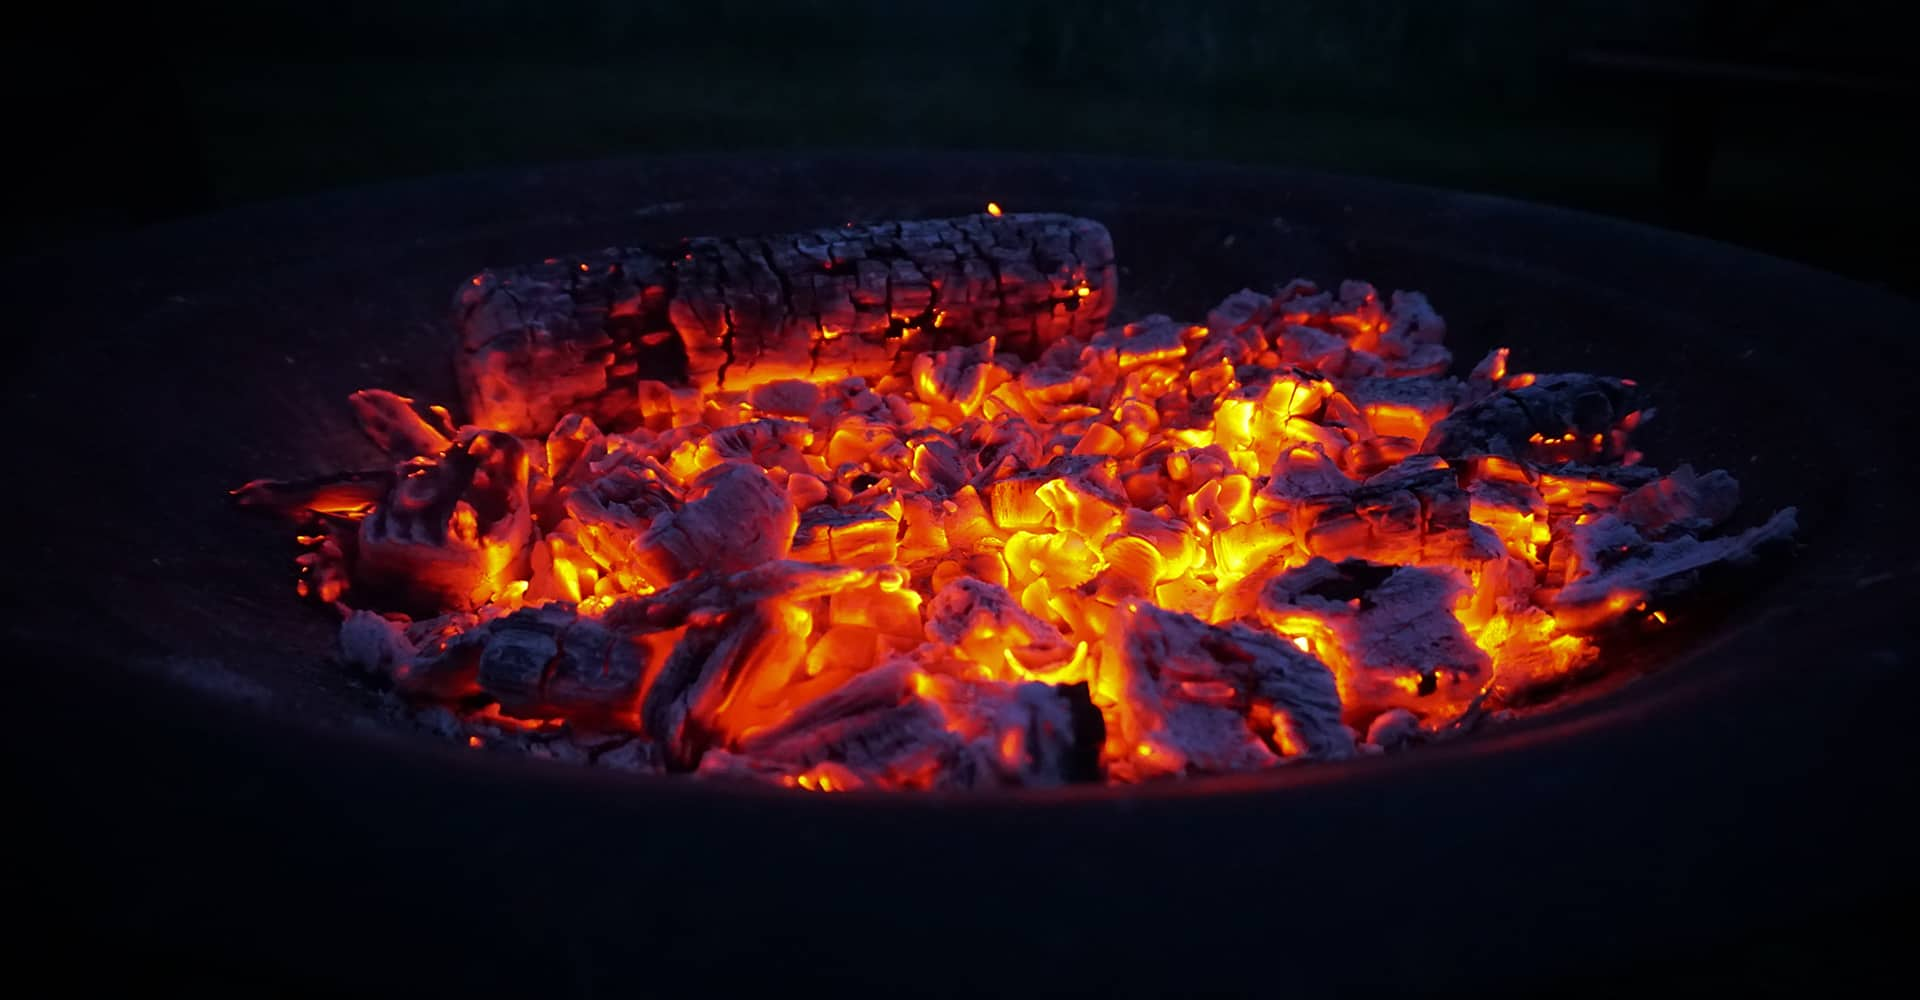 How To Build A Fire Pit On A Patio